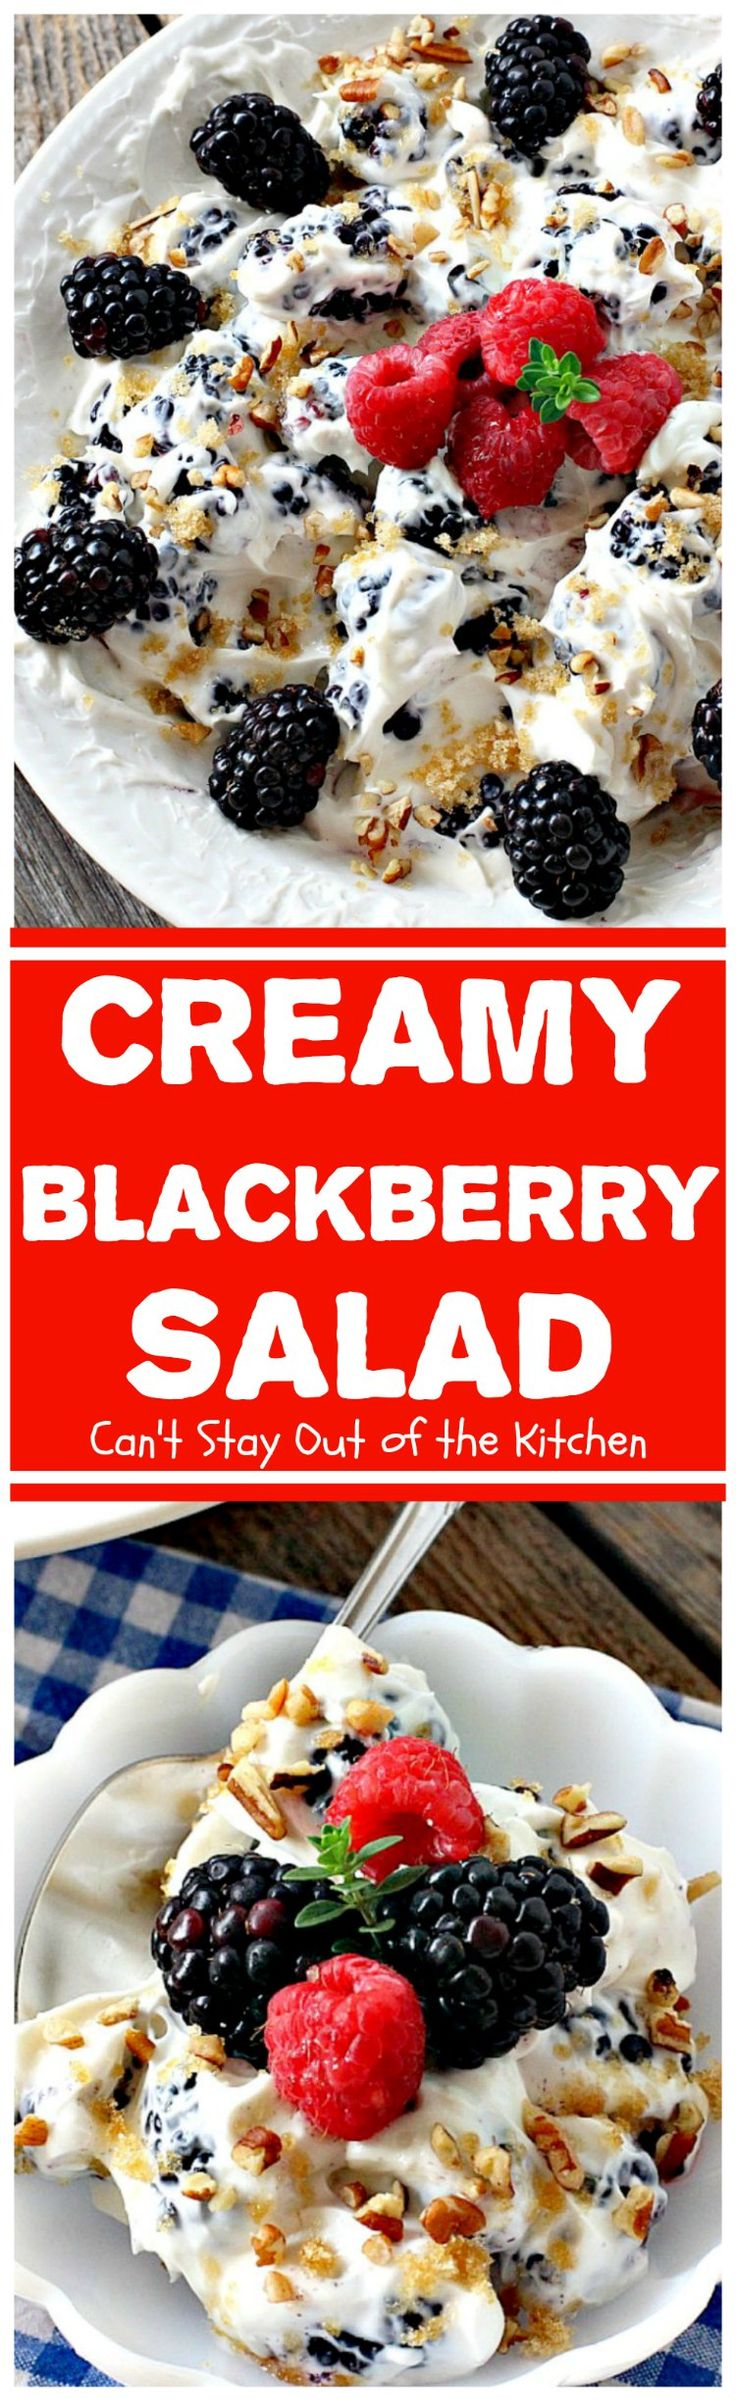 Creamy Blackberry Salad | Can't Stay Out of the Kitchen | this #fruit #salad is divine! It's perfect for summer #holidays, backyard BBQs or potlucks. Easy & delicious. #blackberries #glutenfree